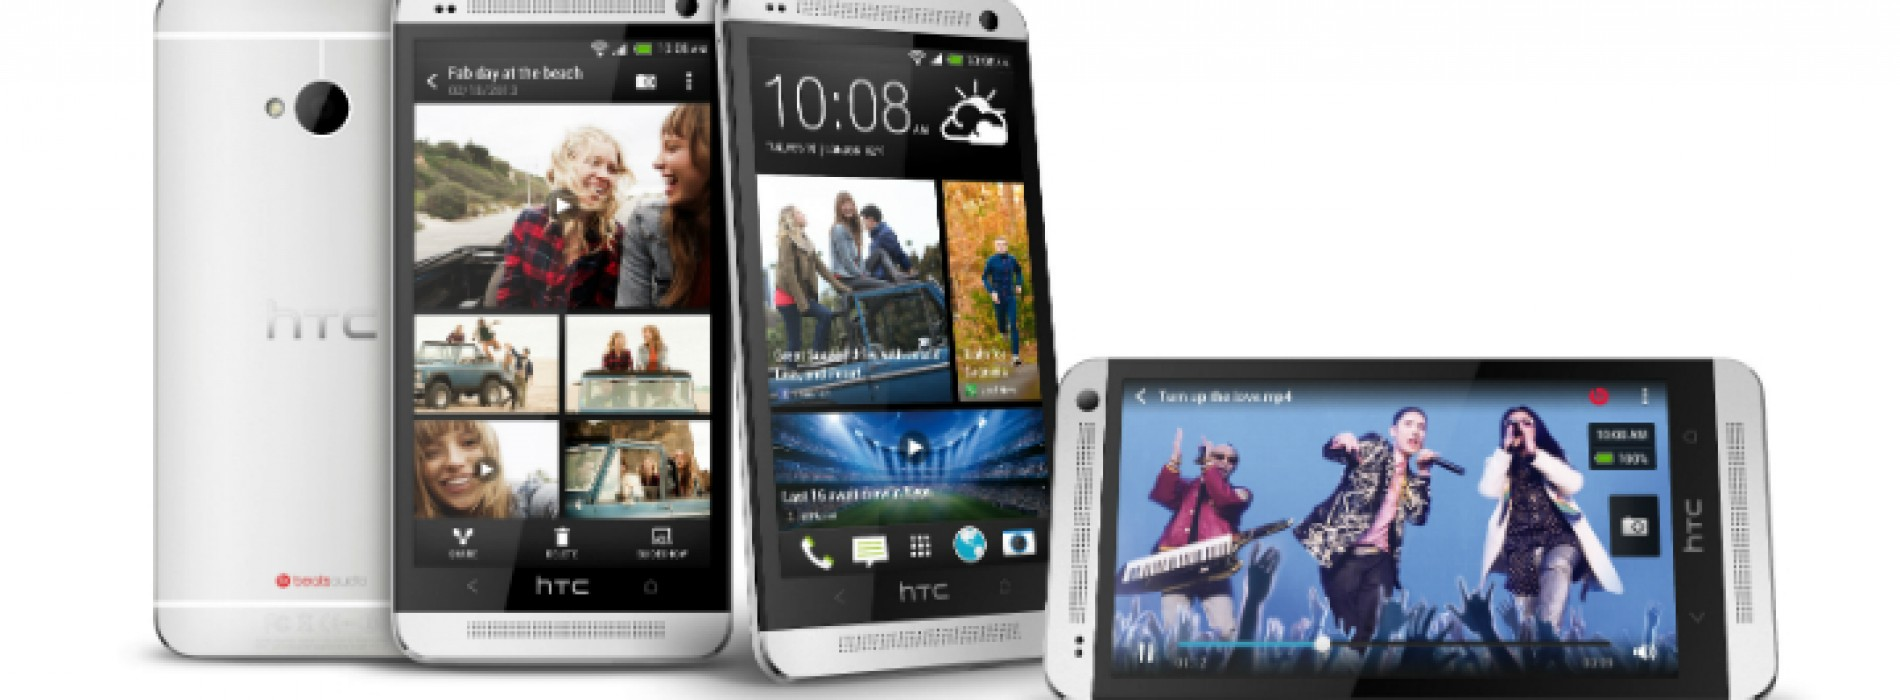 T-Mobile HTC One now available for pre-order, shipping April 18